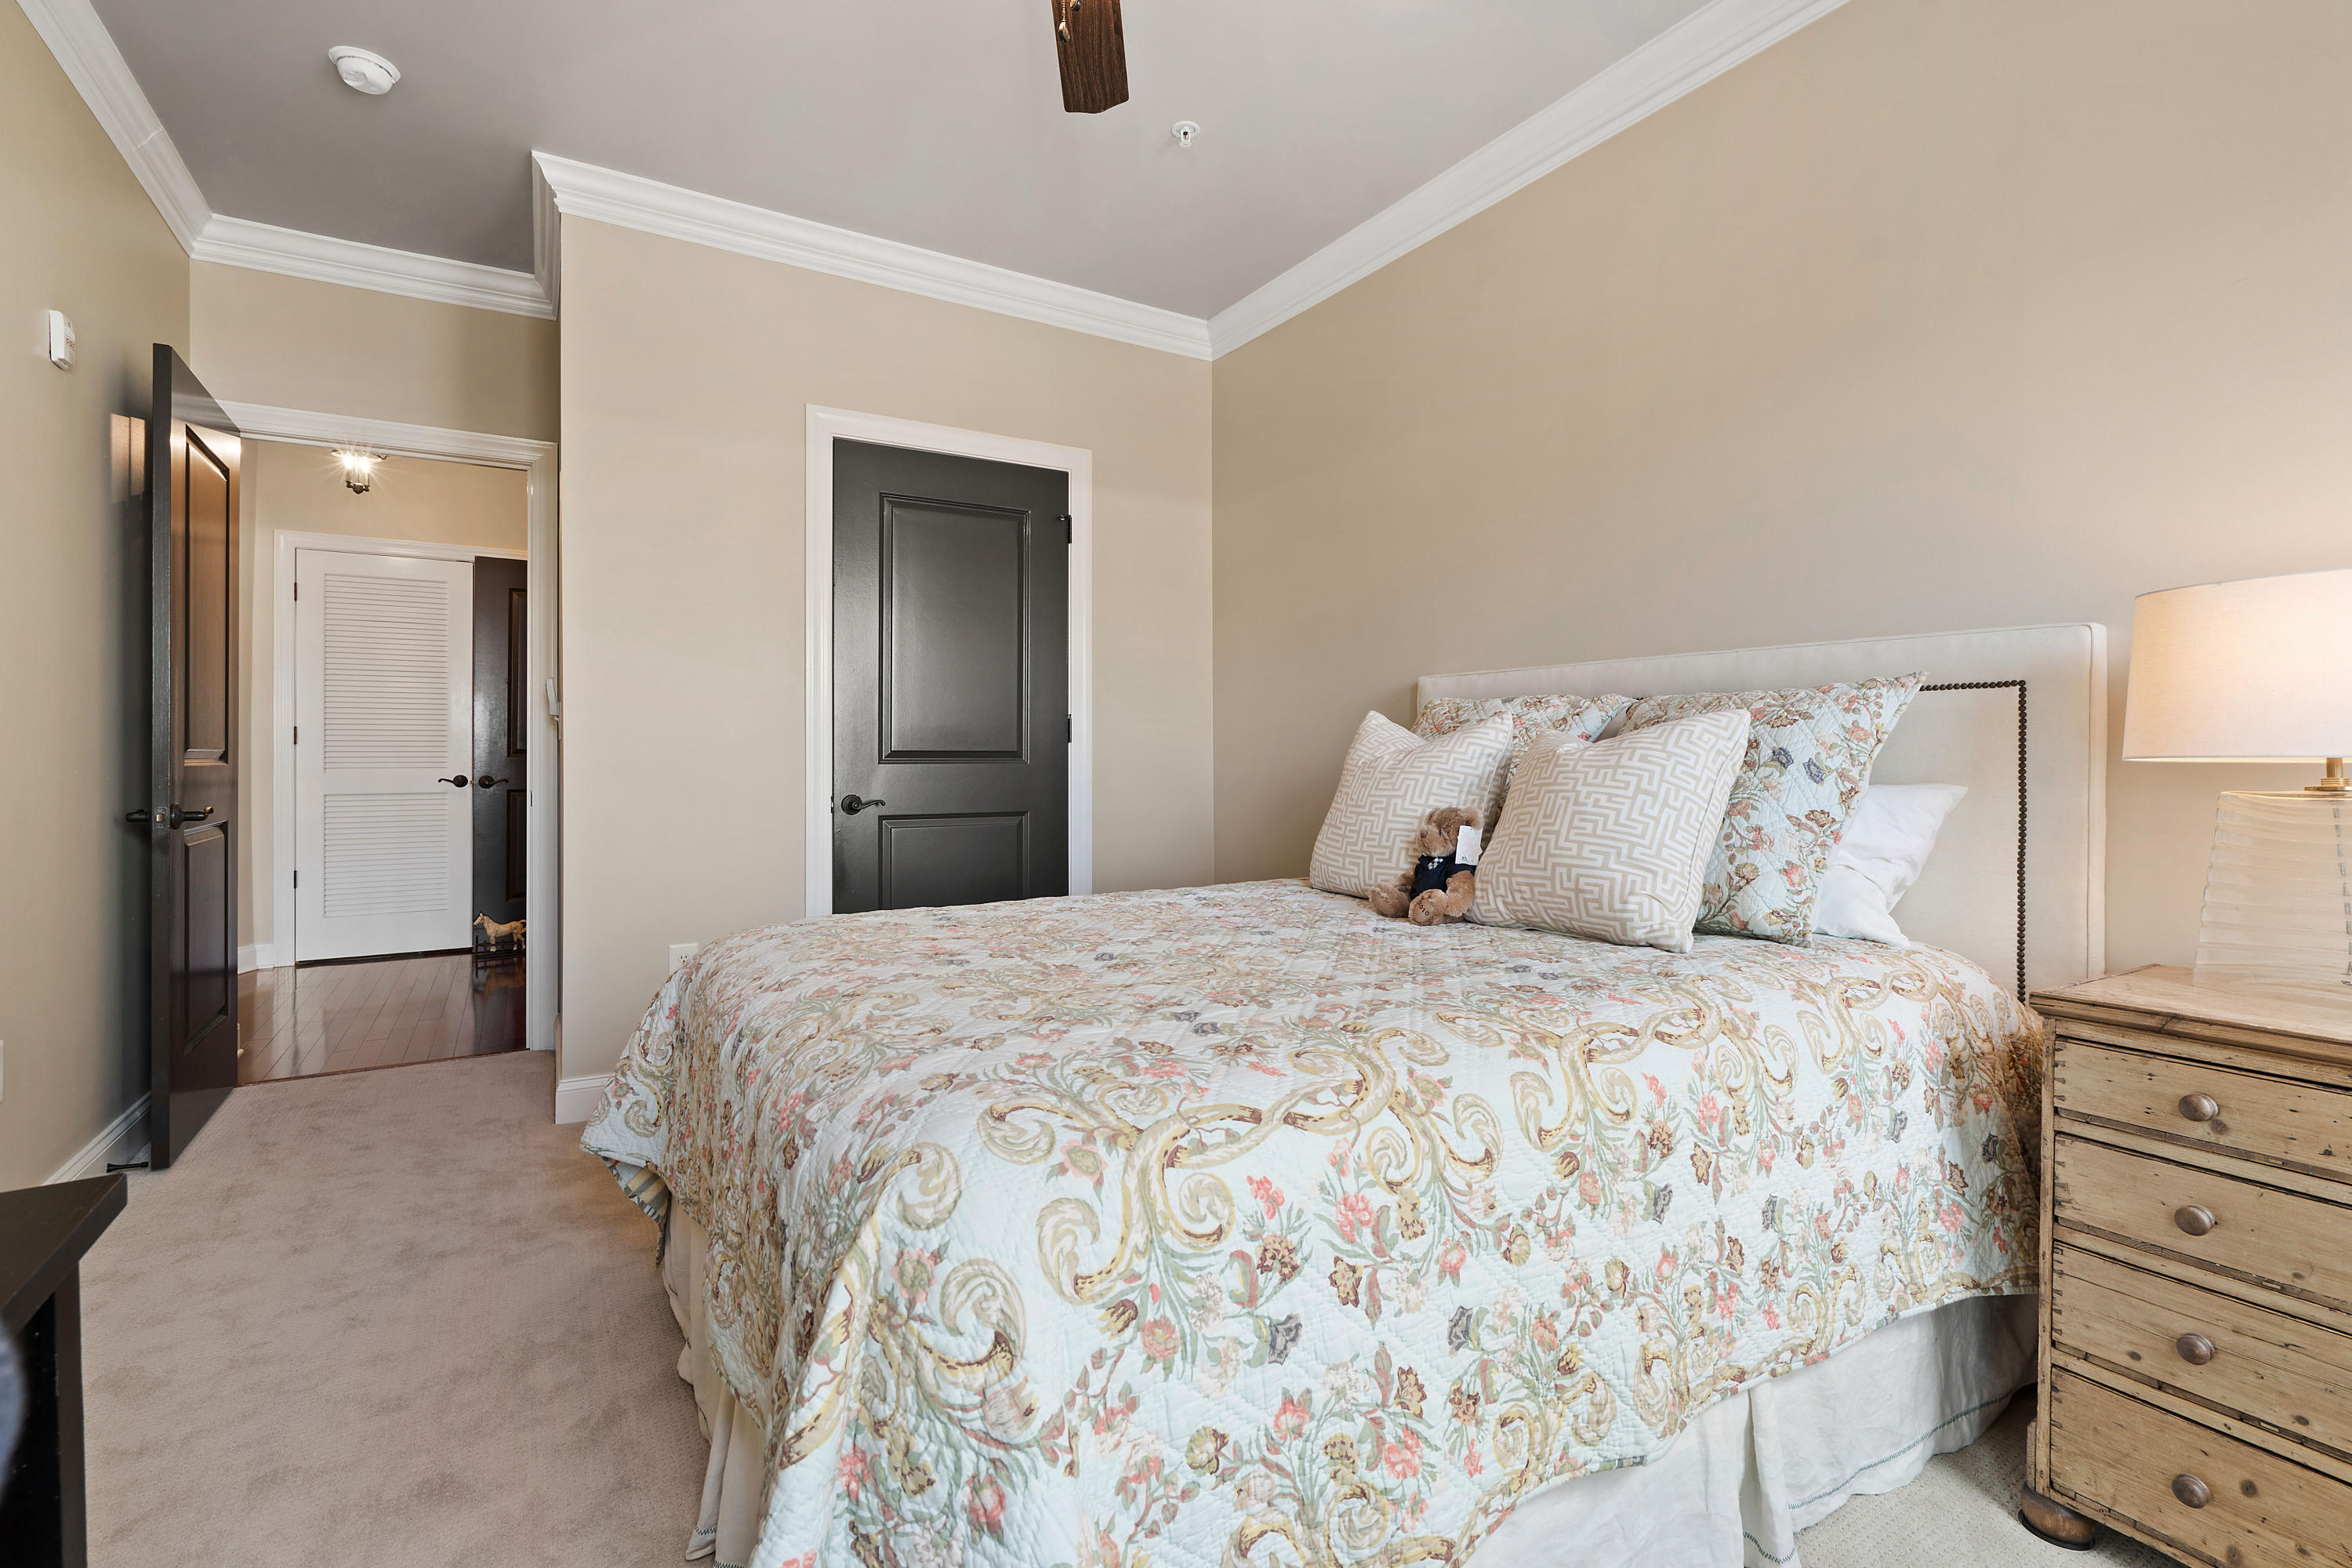 George And Society Condos For Sale - 21 George, Charleston, SC - 26